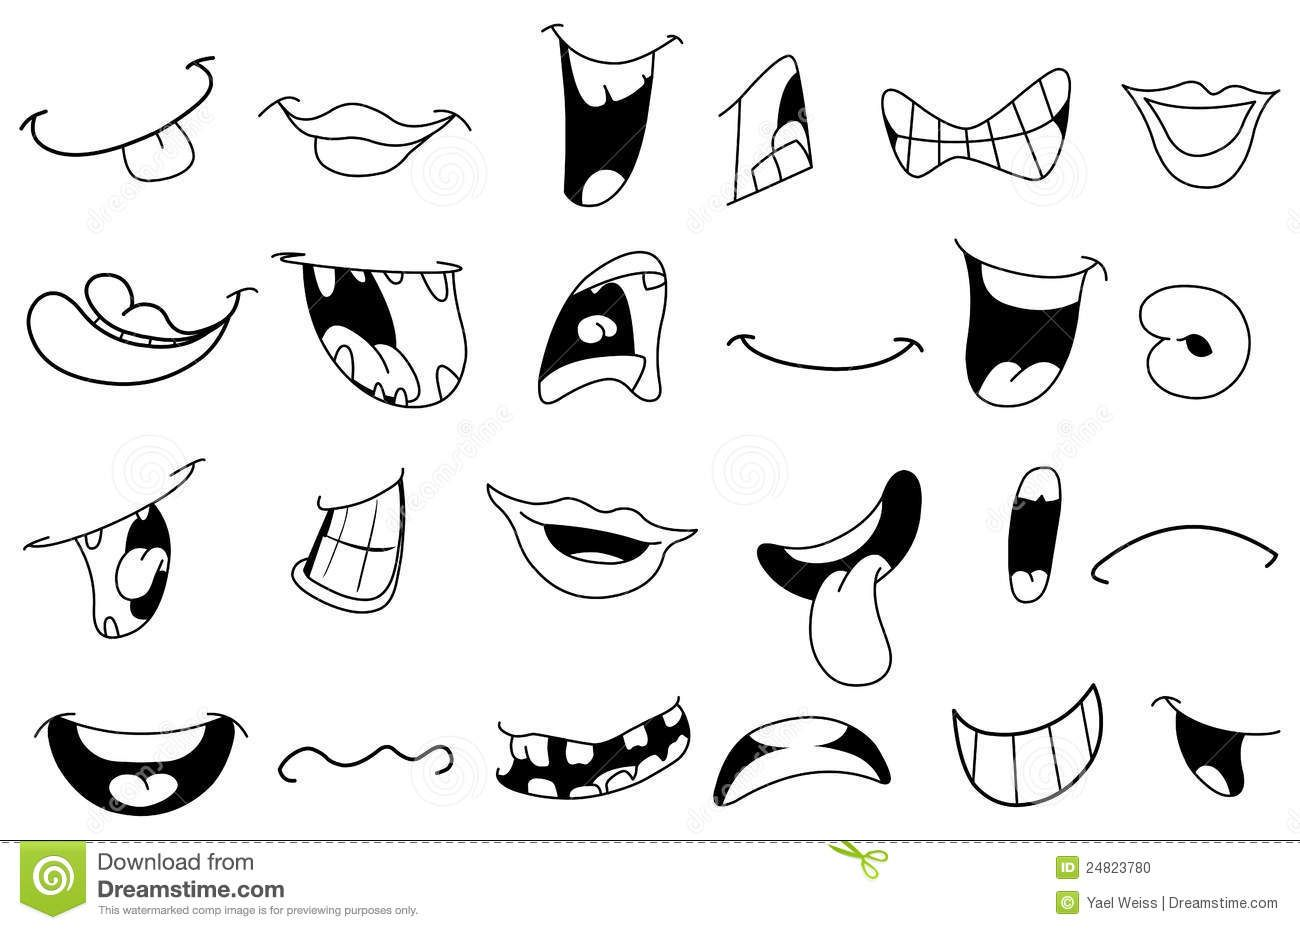 Examples Of Easy To Draw Mouth - Google Search